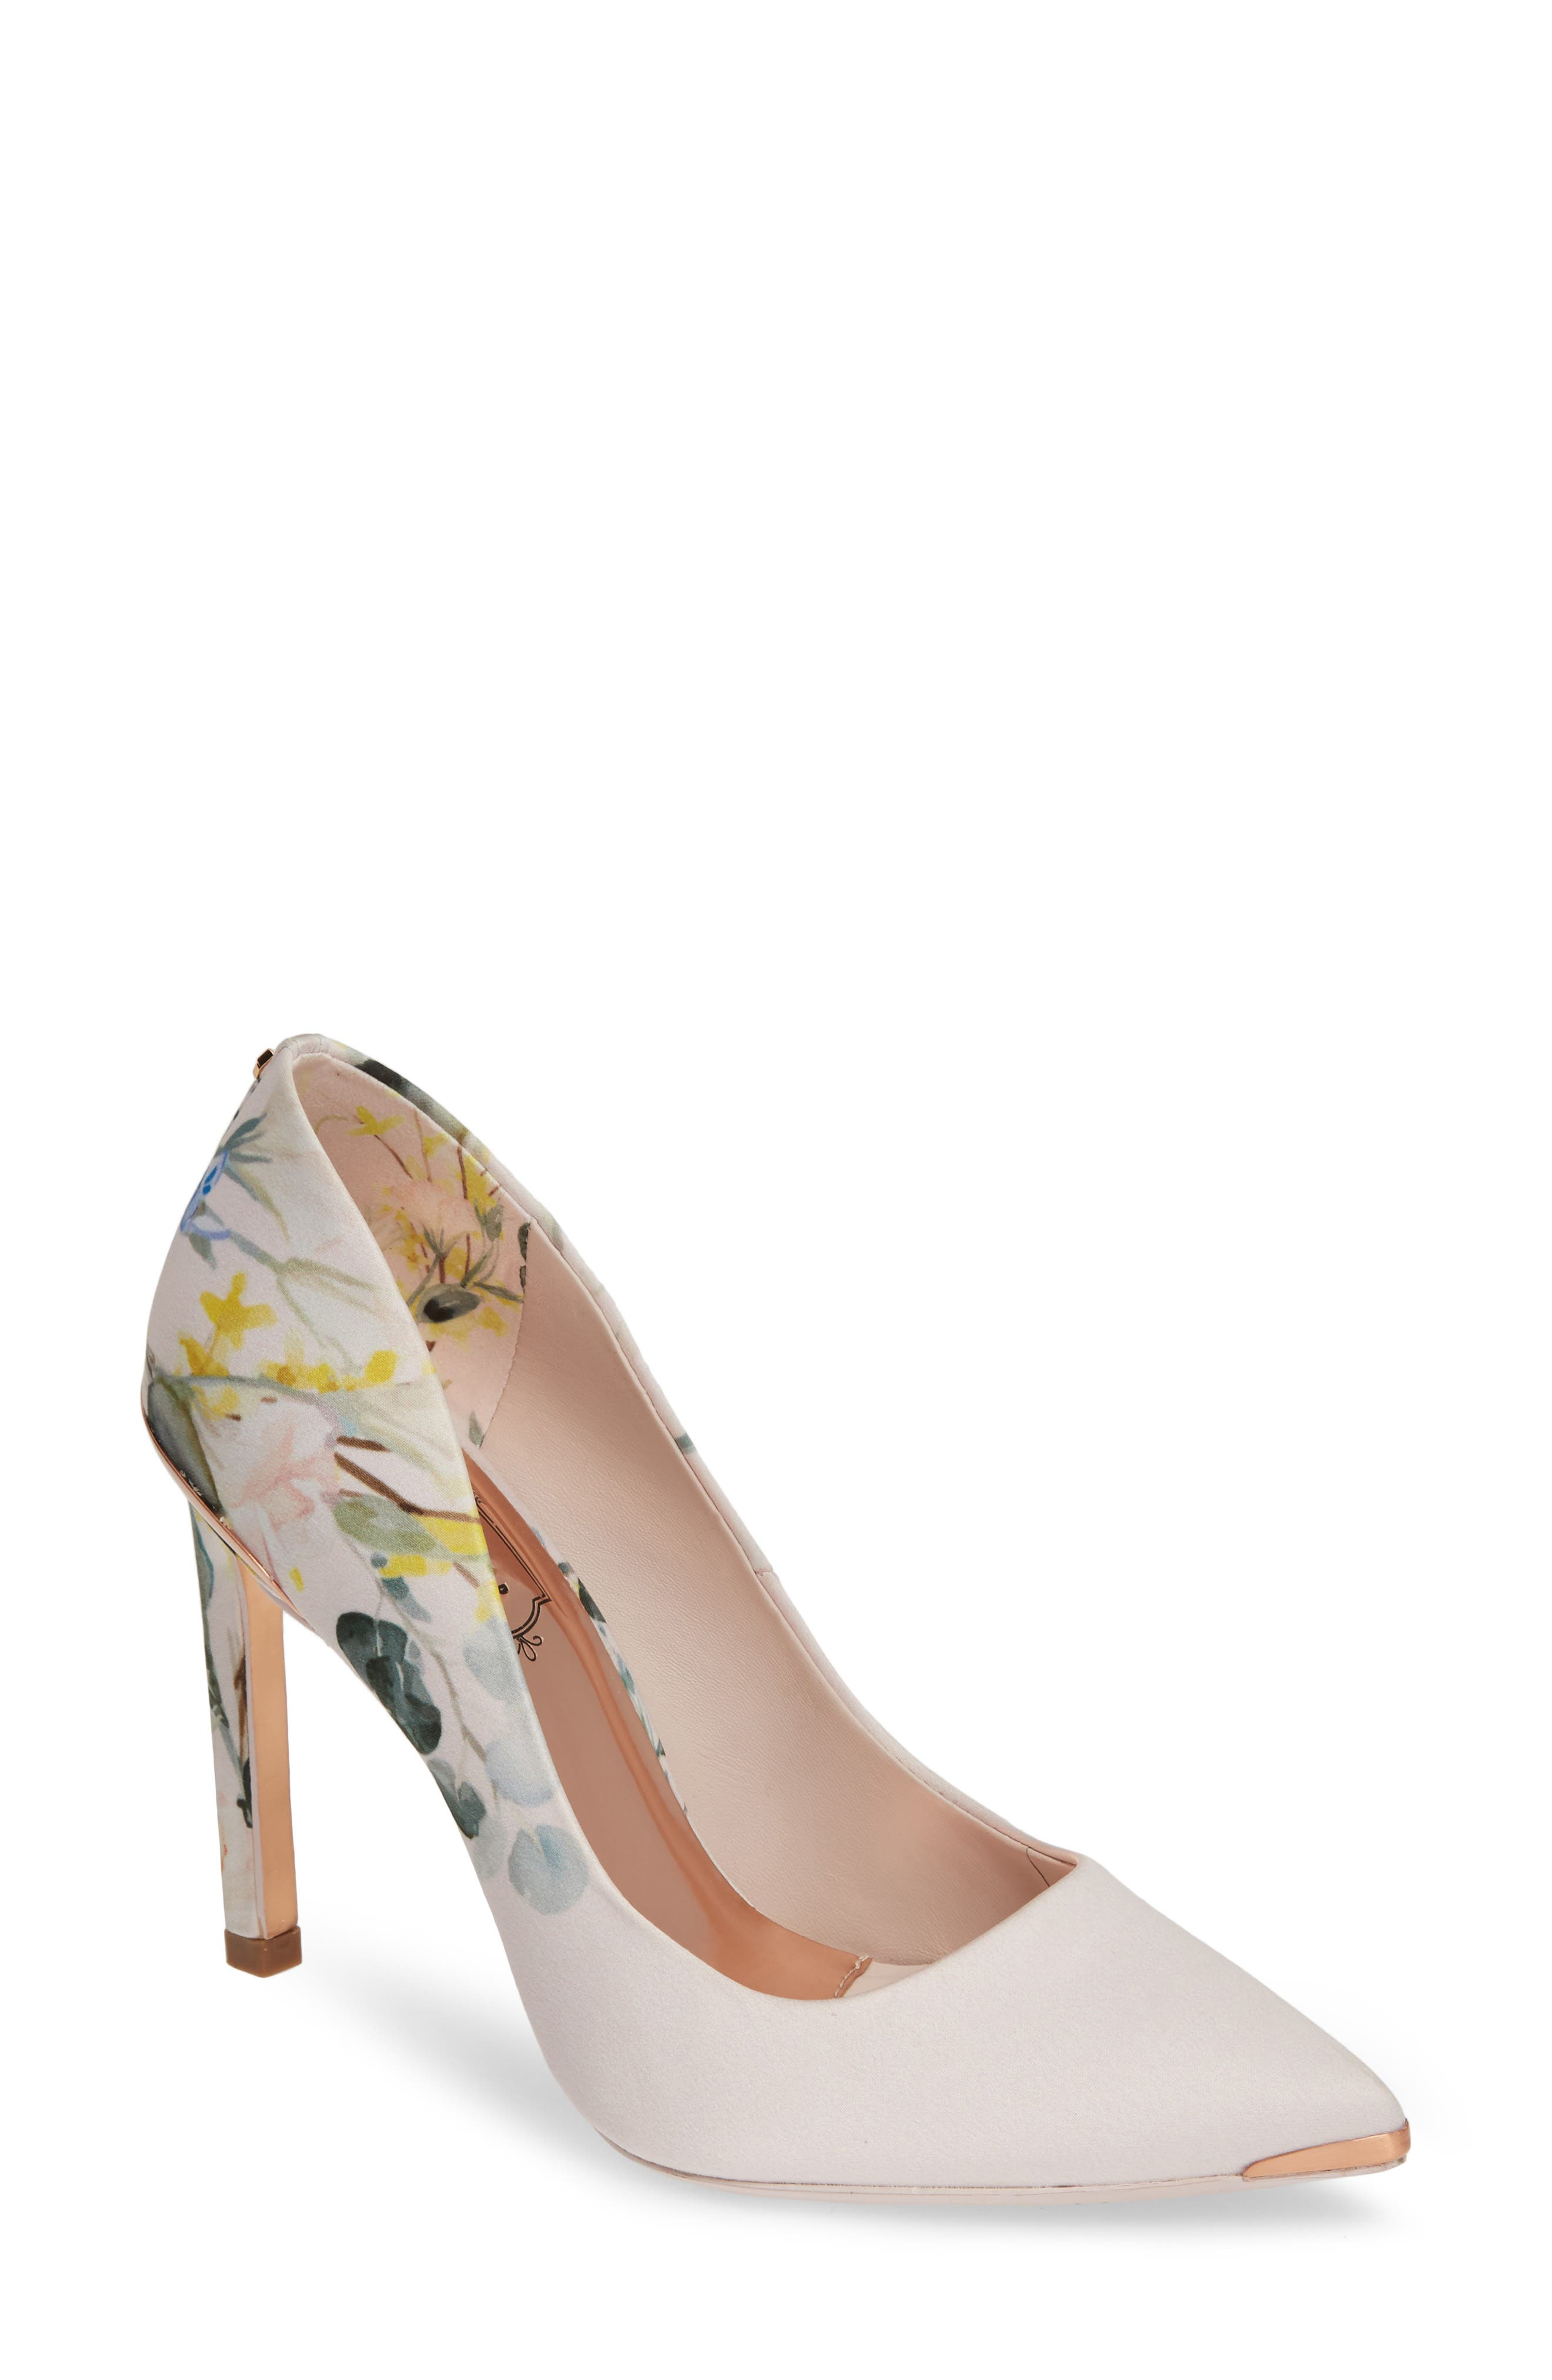 shoes for women 5 feet tall